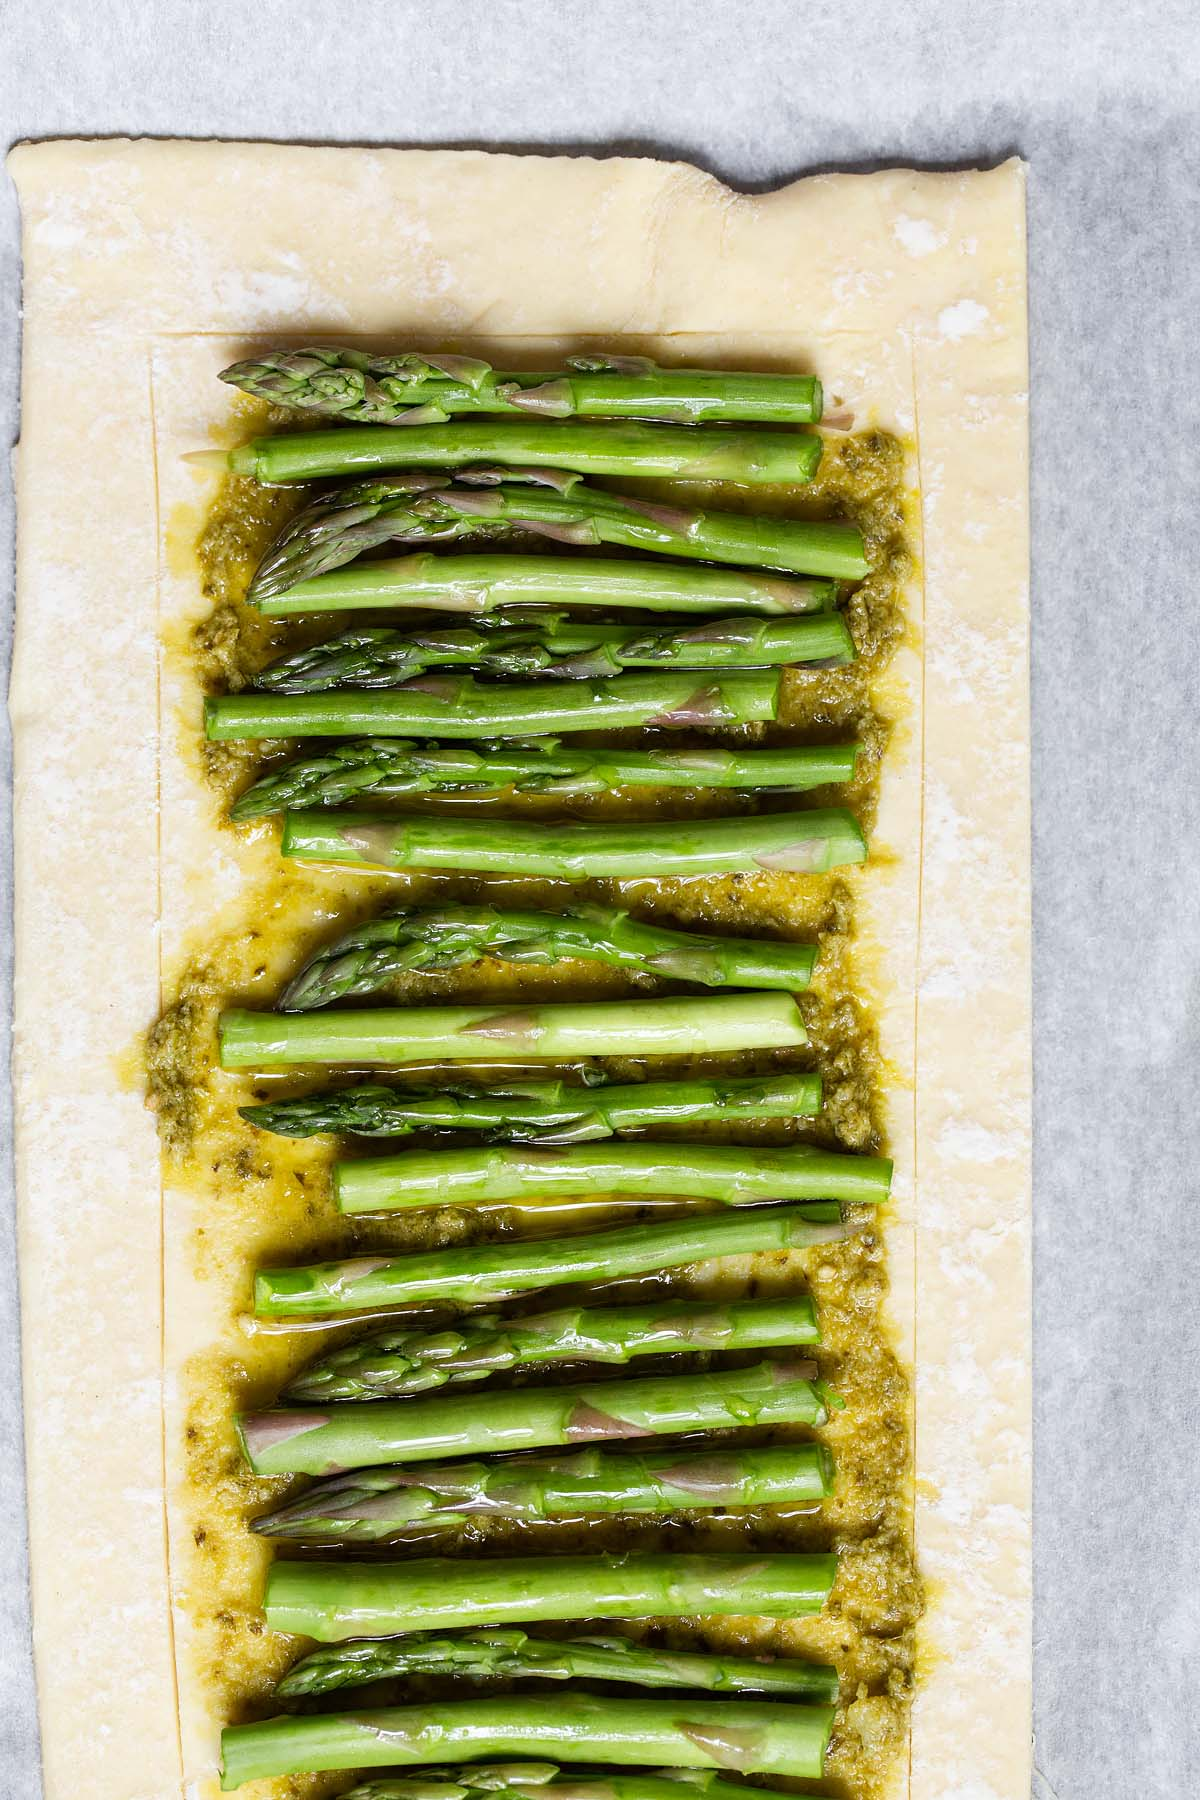 asparagus up close on puff pastry